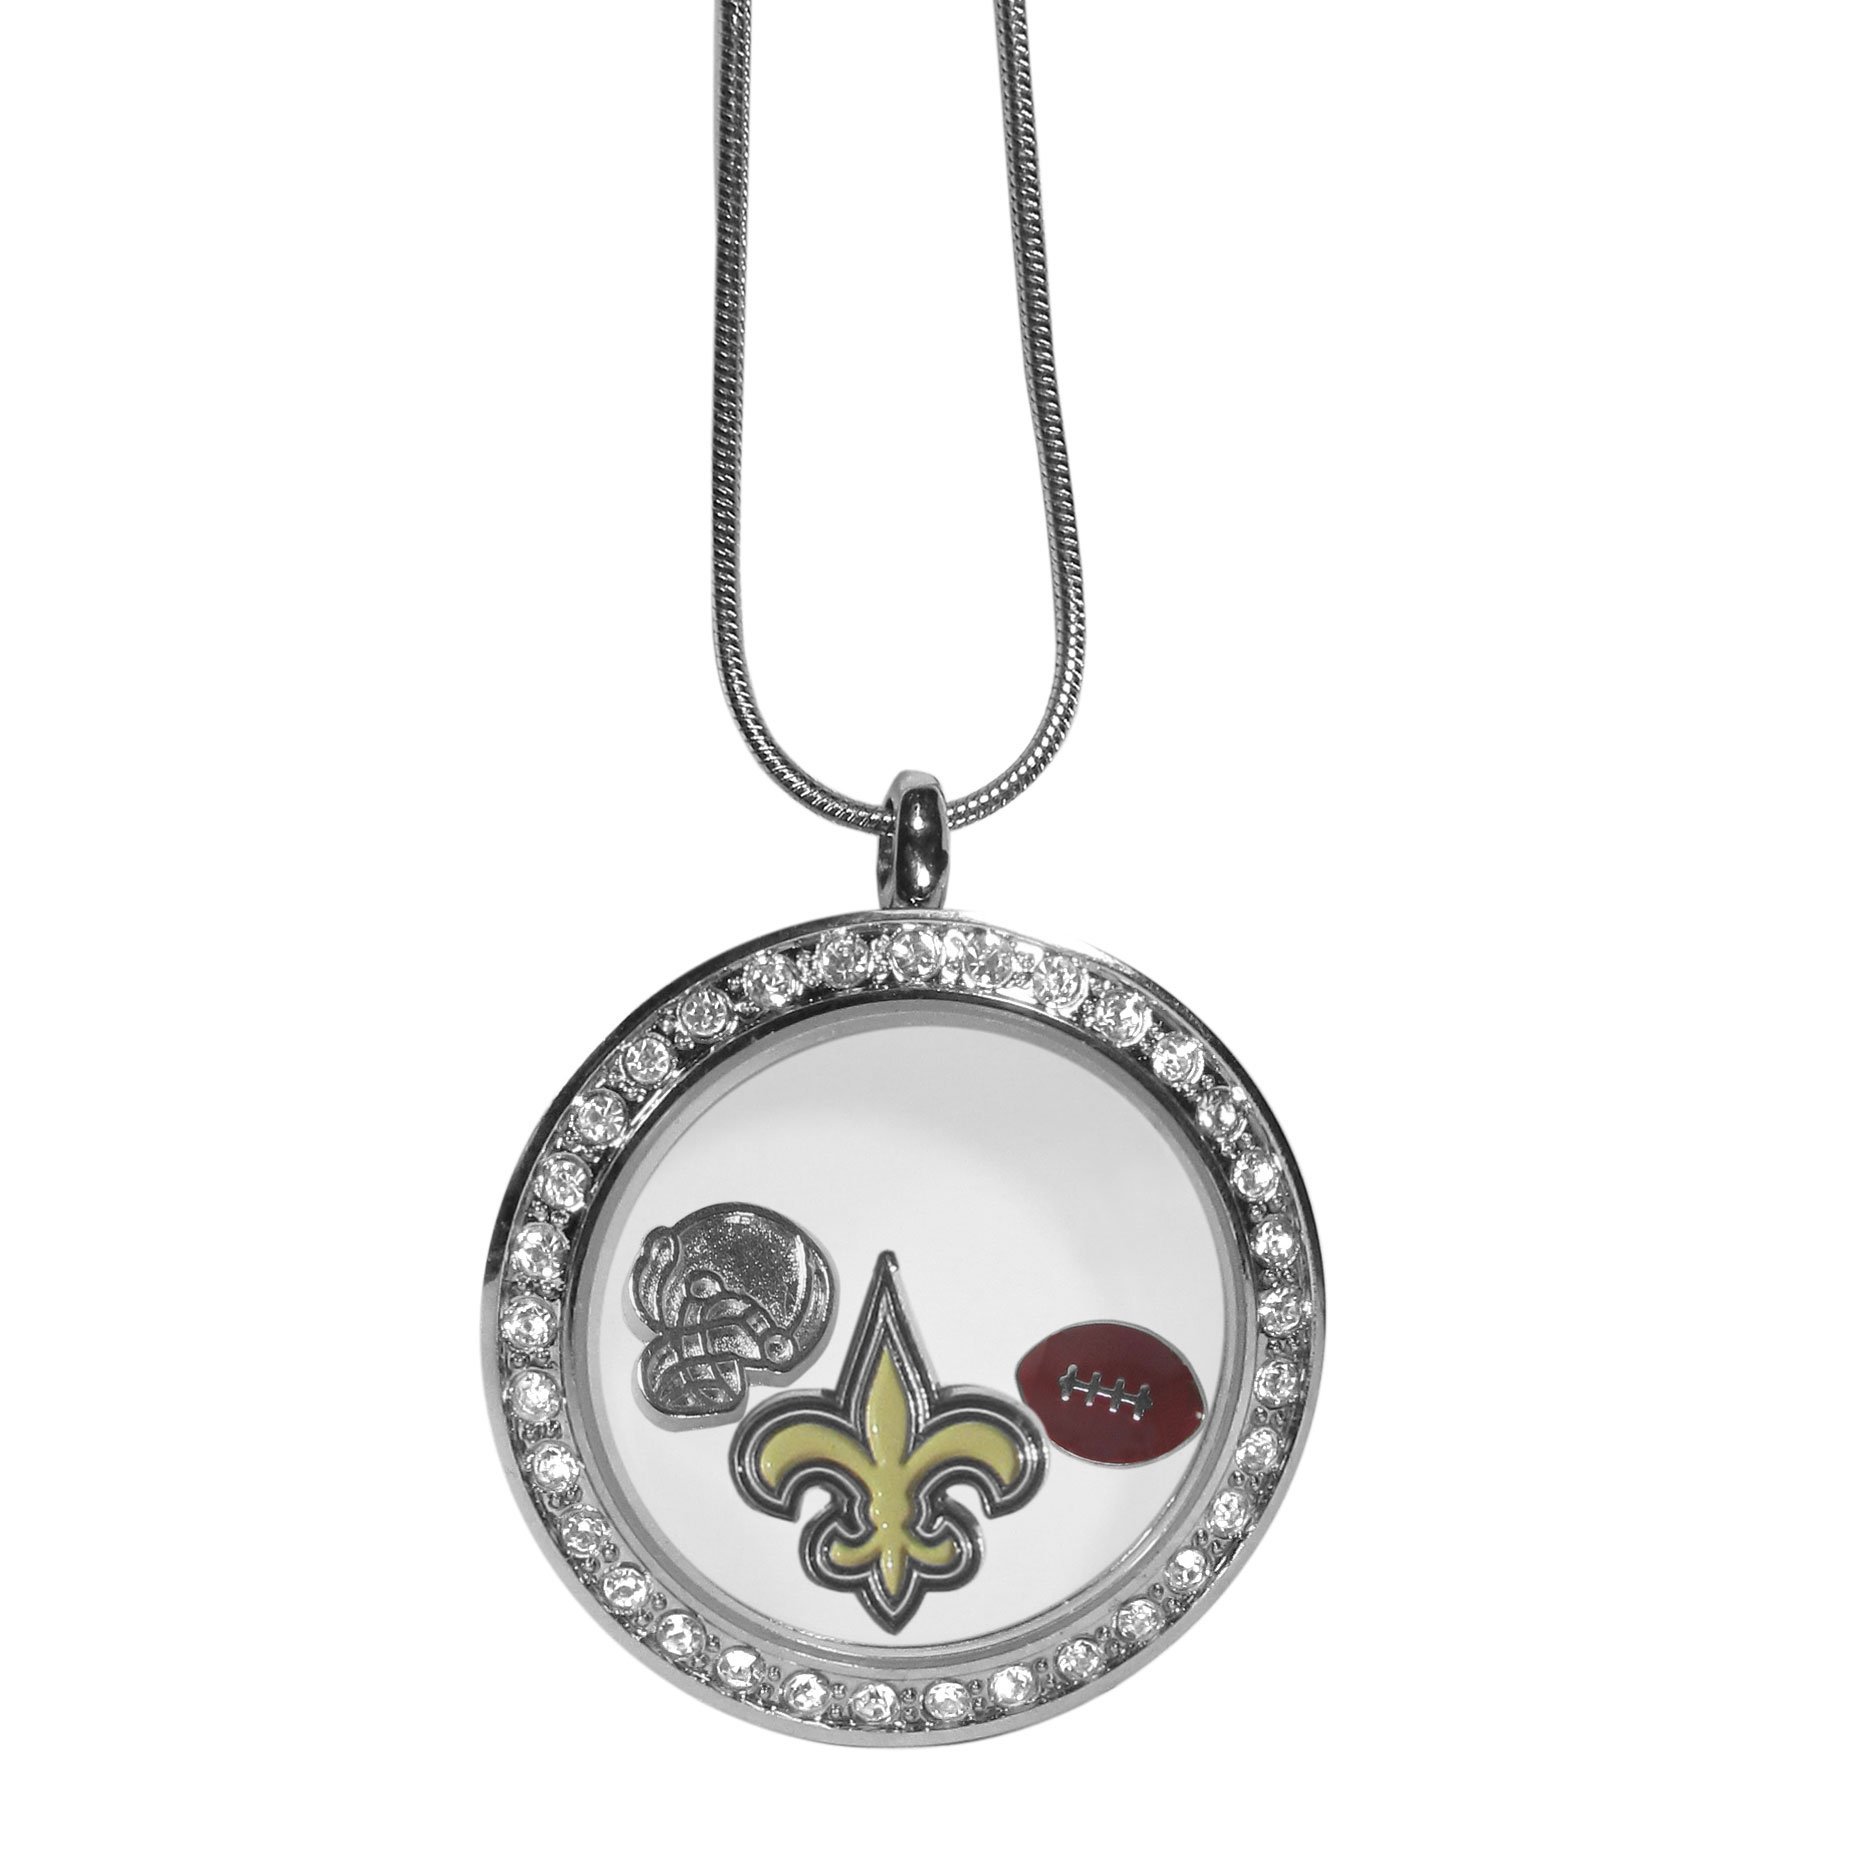 New Orleans Saints Locket Necklace - We have taken the classic floating charm locket and combined with licensed sports charms to create a must have fan necklace. The necklace comes with 3 charms; 1 New Orleans Saints charm, one football charm and one helmet charm. The charms float in a beautiful locket that has a strong magnetic closure with a rhinestone border. The locket comes on an 18 inch snake chain with 2 inch extender.